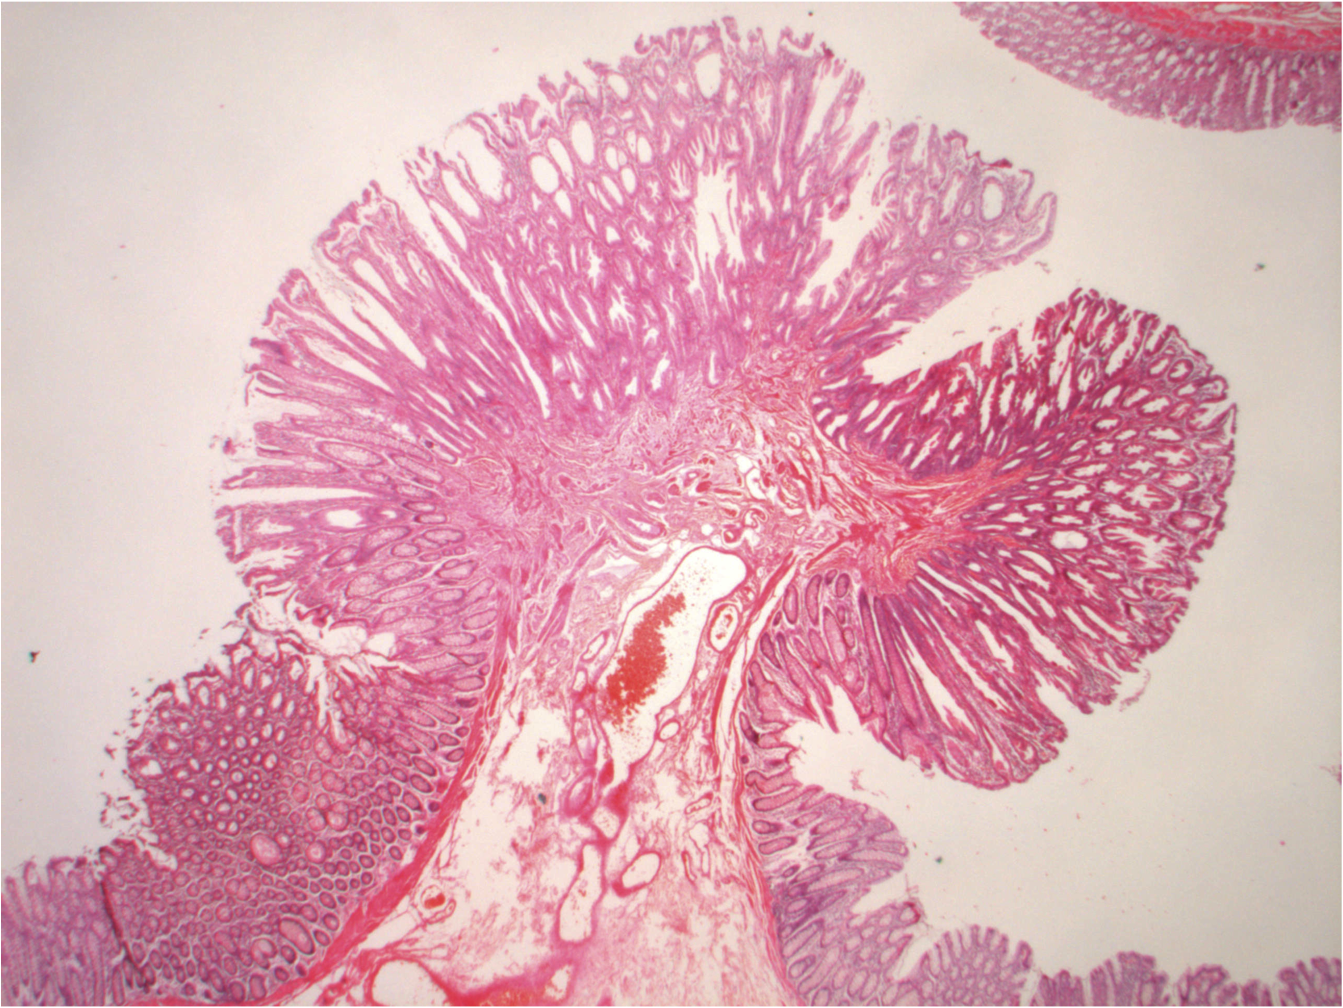 Cellular Nutrition Why The Villi In Our Small Intestine Are